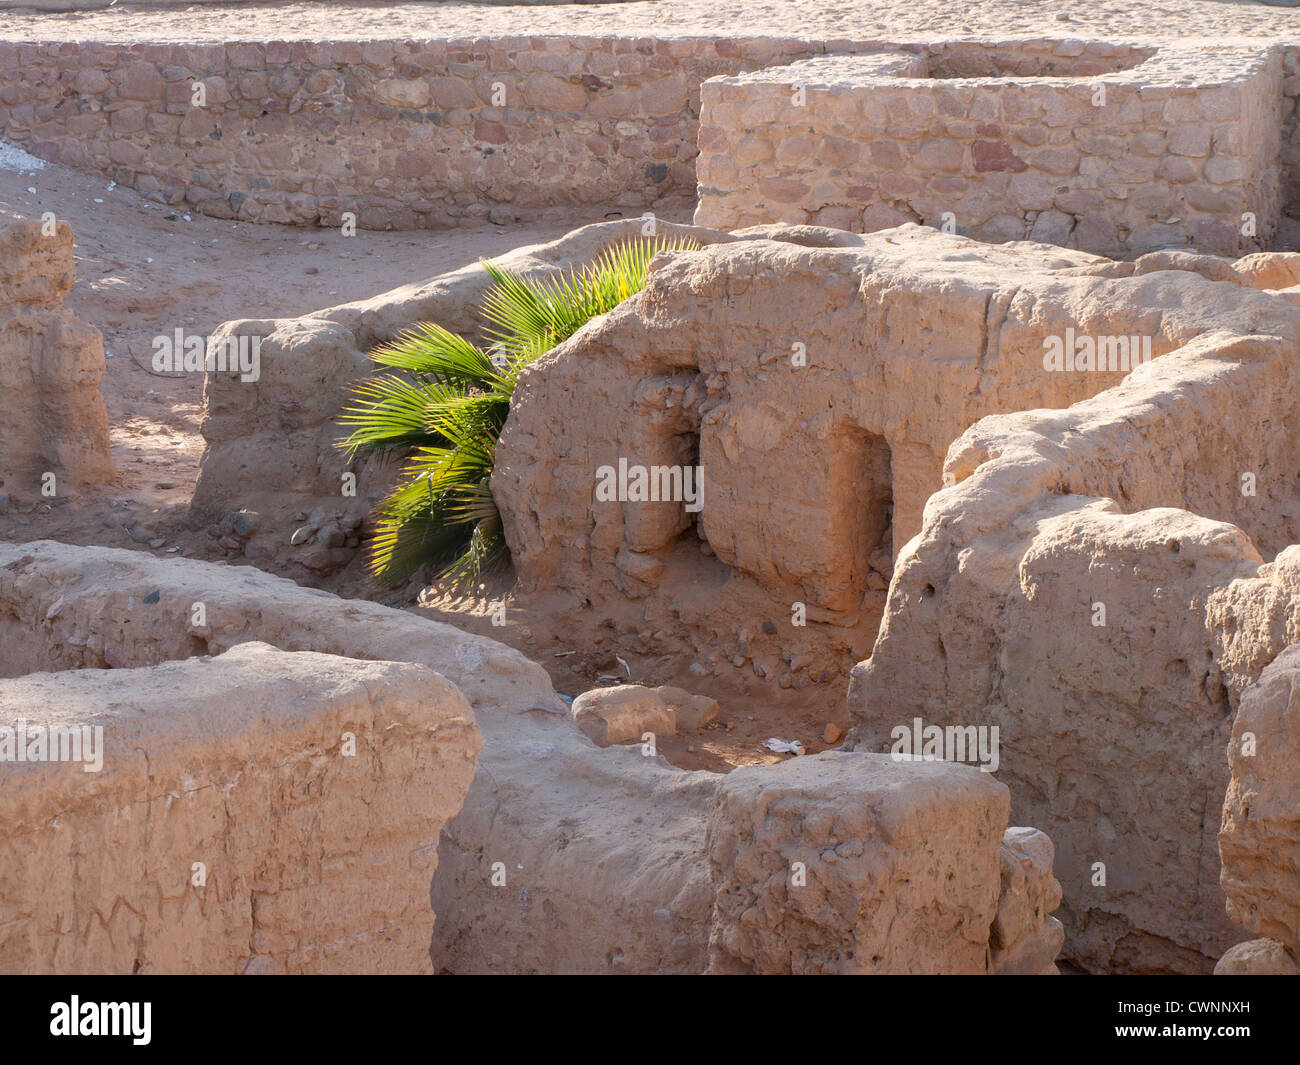 Not much is there to see at the  archaeological site in Aqaba Jordan with remnants of late roman church - Stock Image